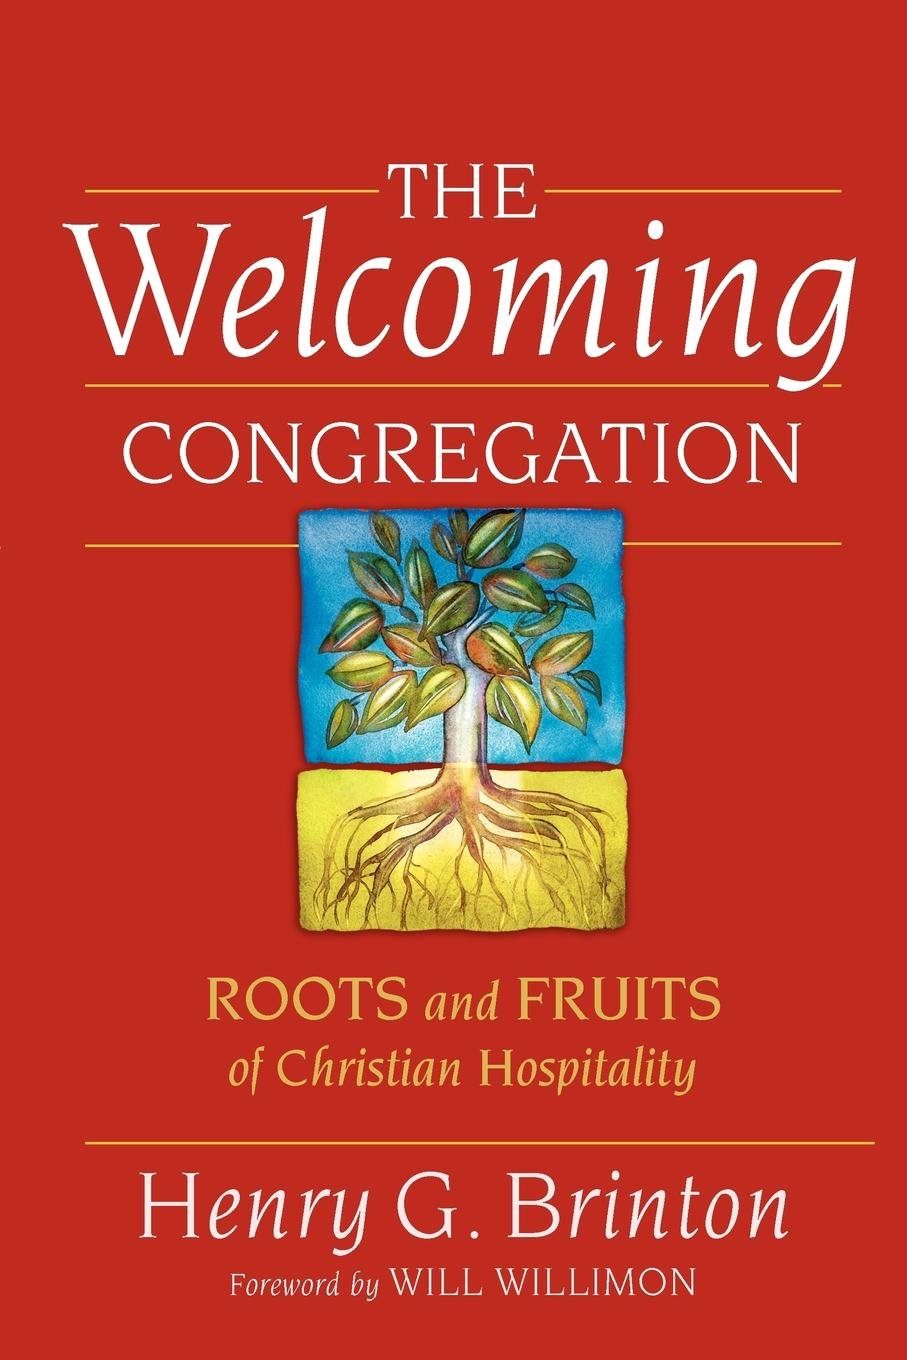 The Welcoming Congregation: Roots and Fruits of Christian Hospitality PDF